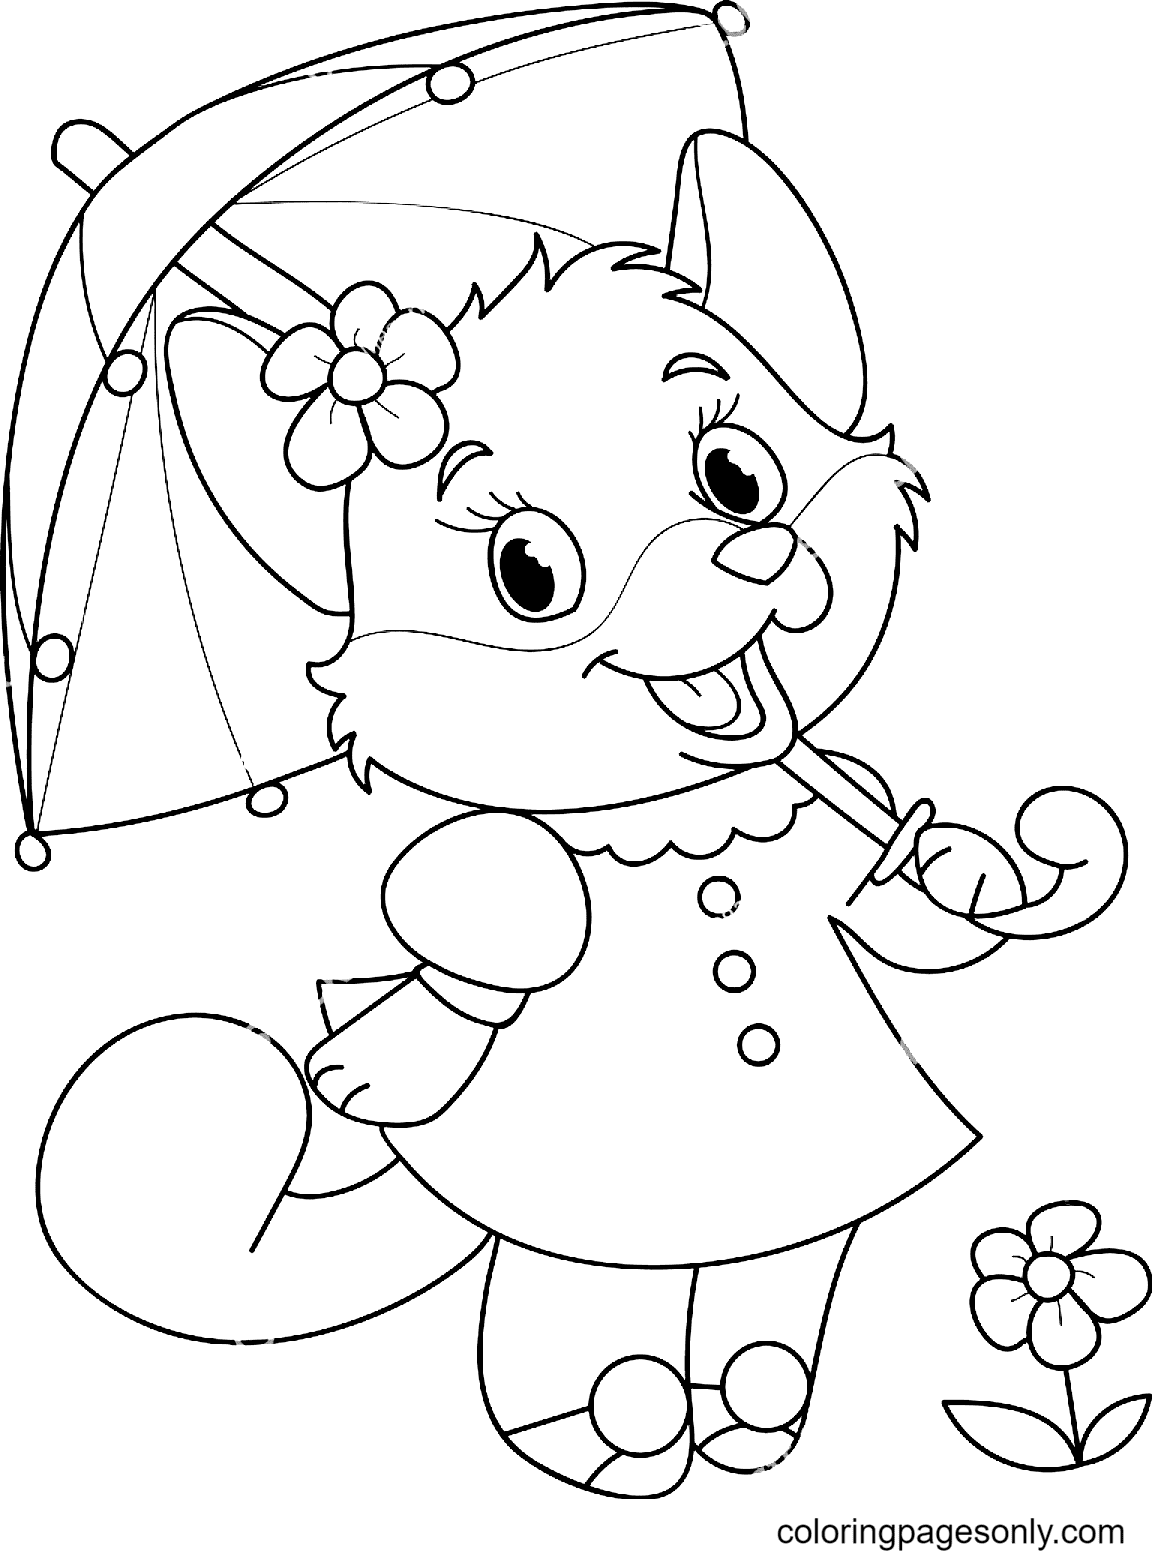 Beautiful Smiling Fox Coloring Page